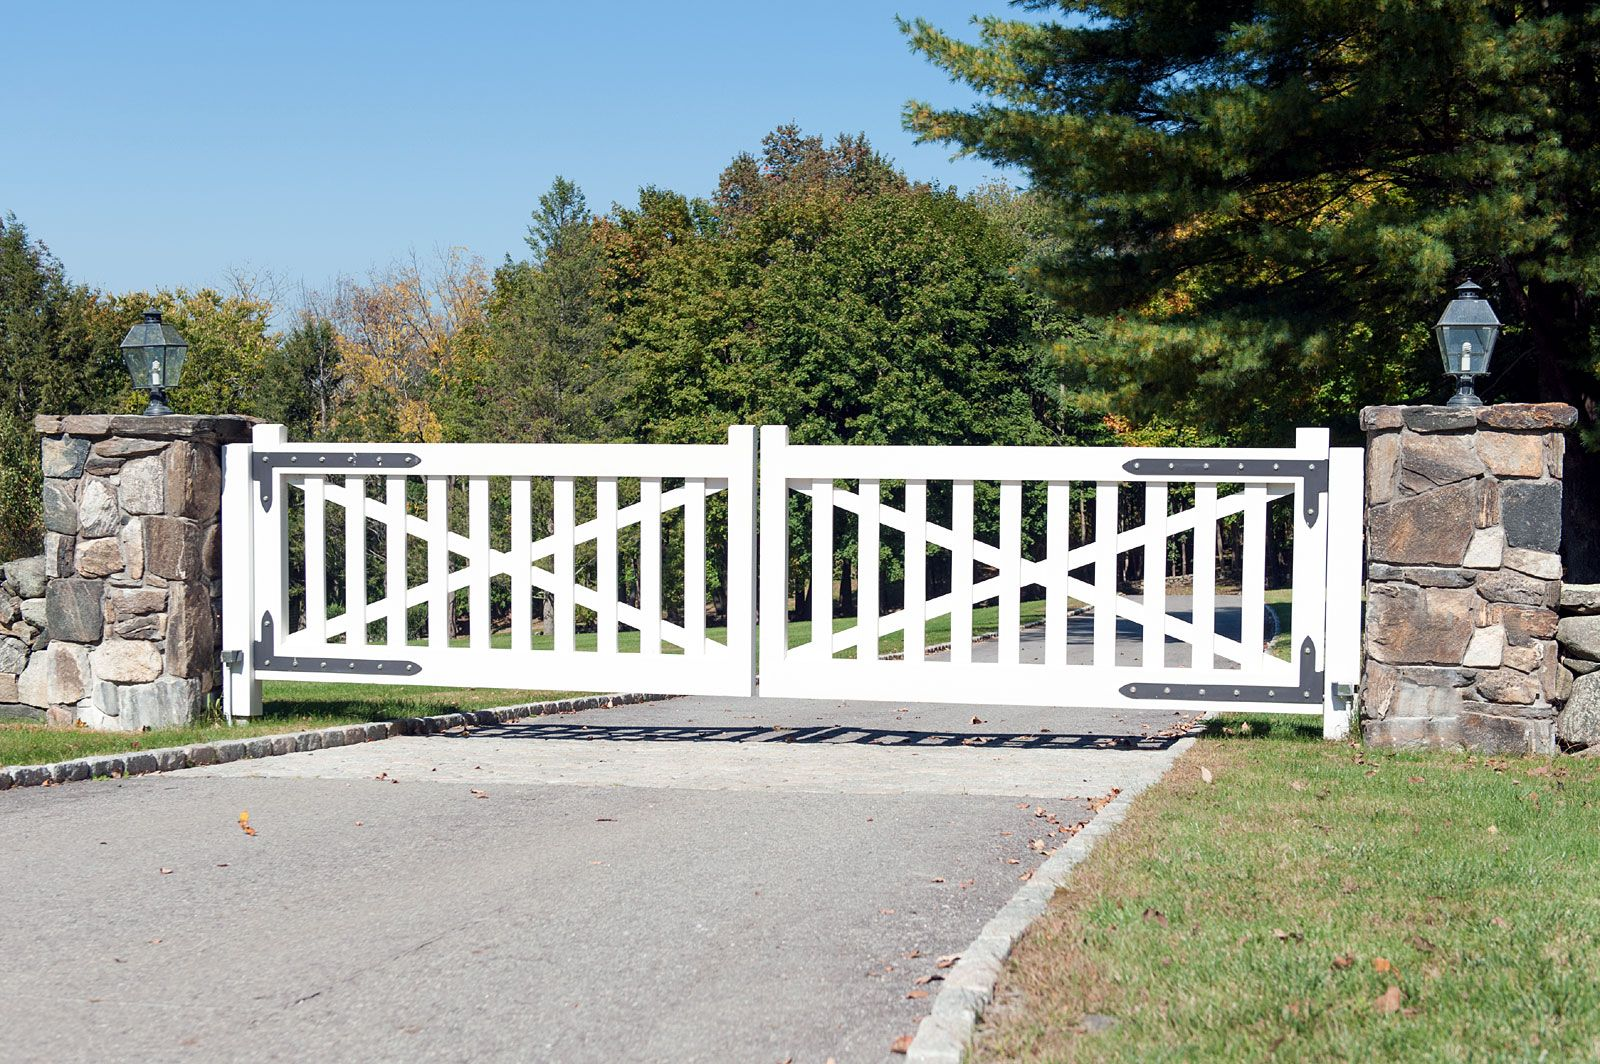 Streamlined Farmhouse Design For This White Wooden Driveway Gate Beautiful Black Iron Details And Custom St Farm Gate Entrance Wooden Gates Driveway Farm Gate